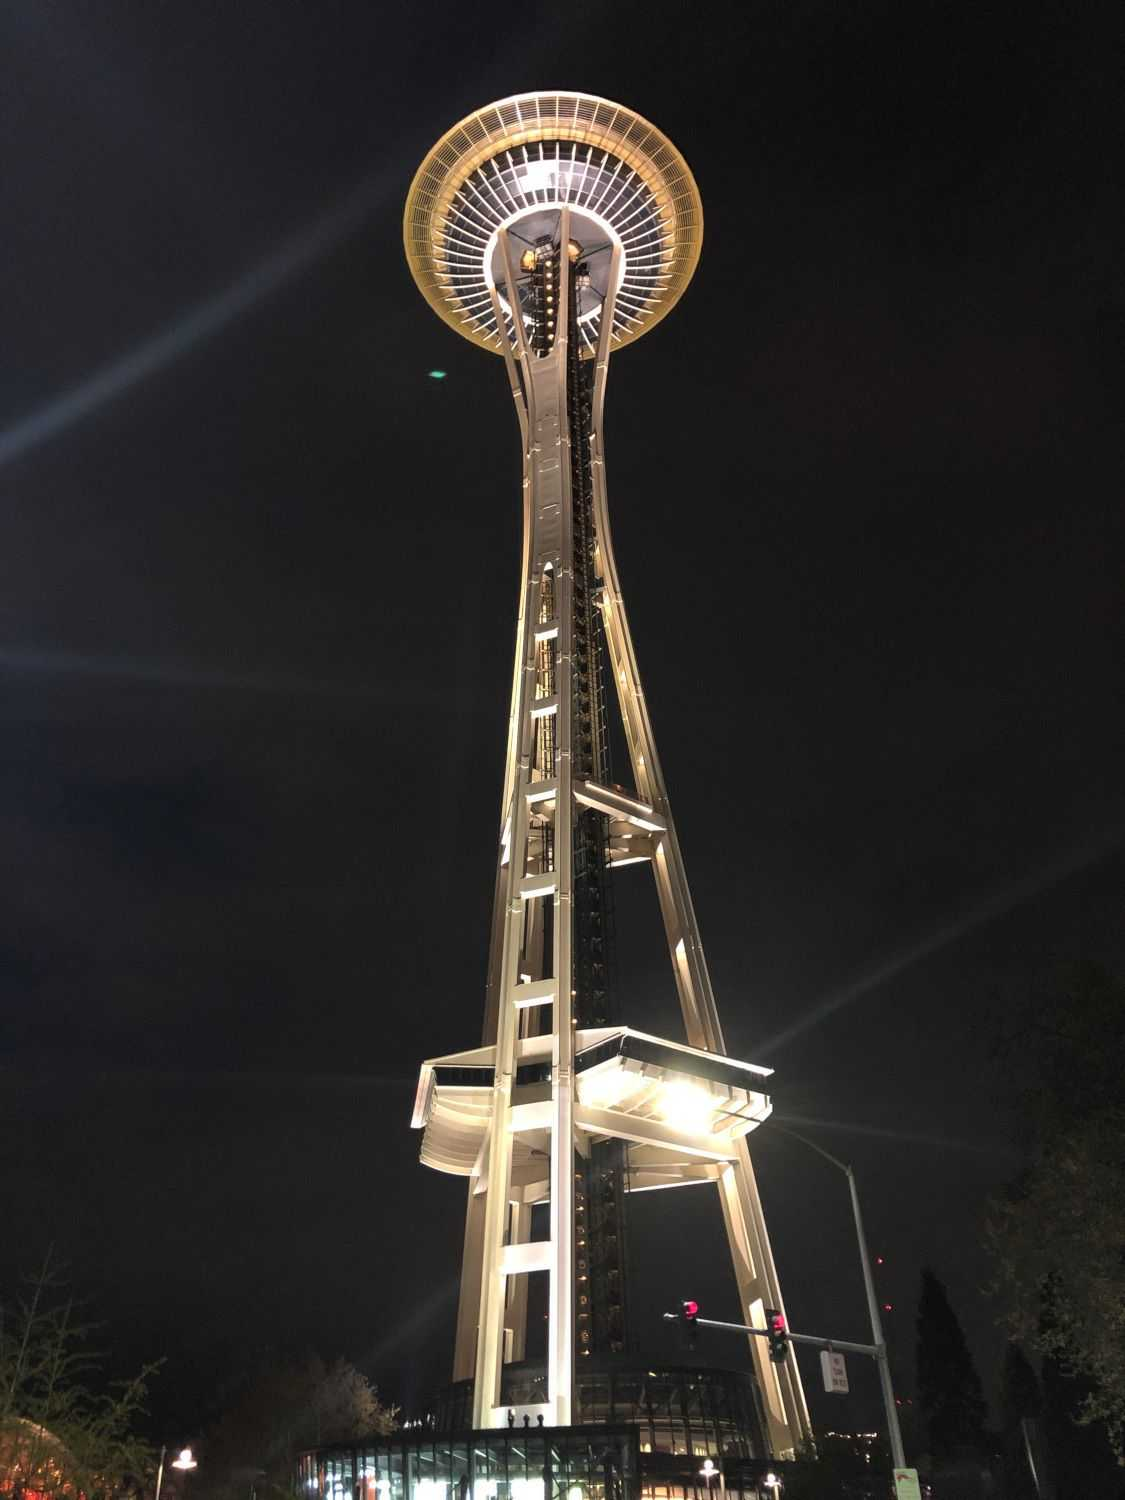 We walked by the Space Needle